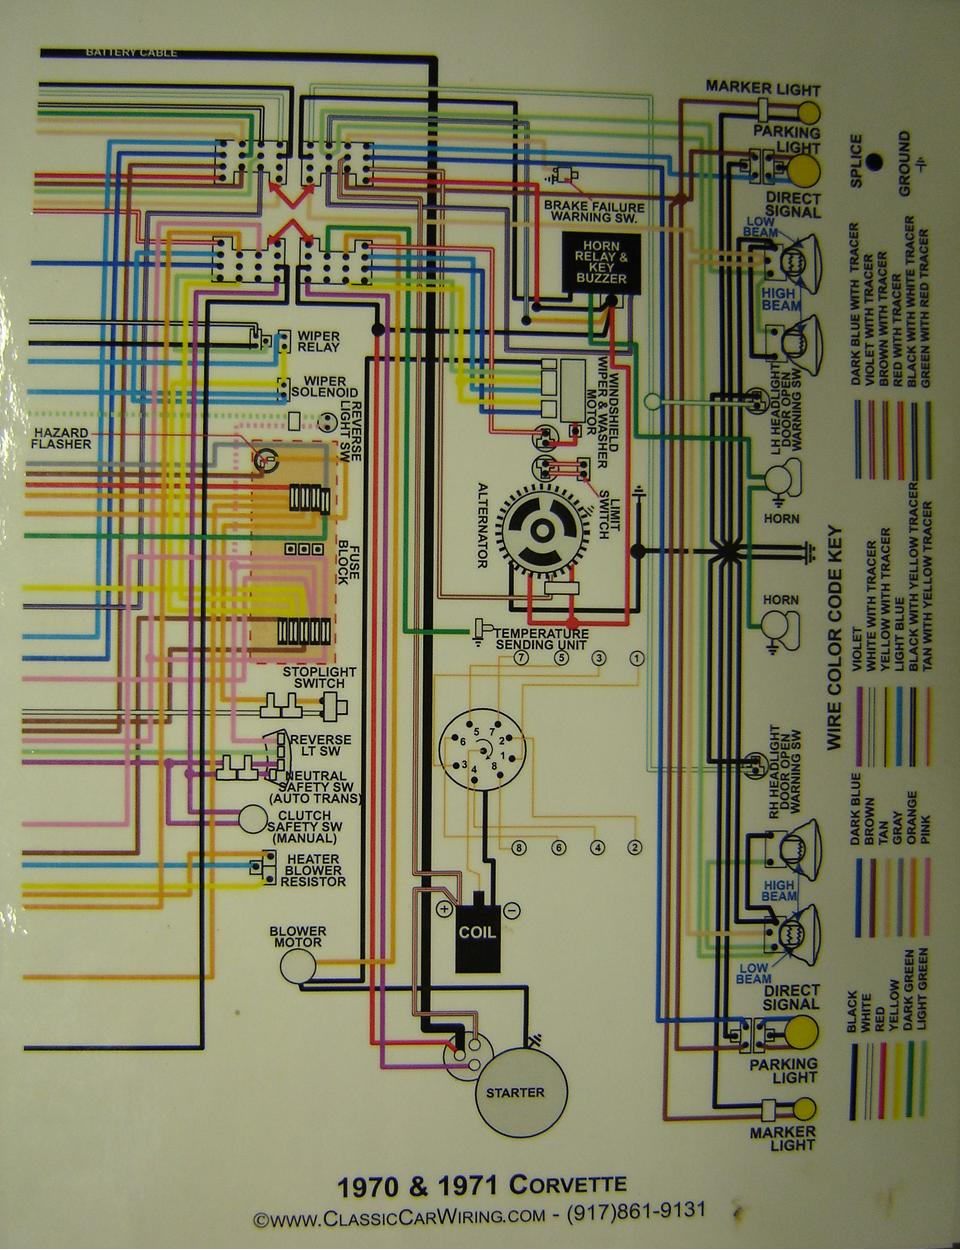 1969 Corvette Dash Wiring Diagram Explore On The Net 1965 Pontiac Gto 72 26 Images 1979 Pdf Console